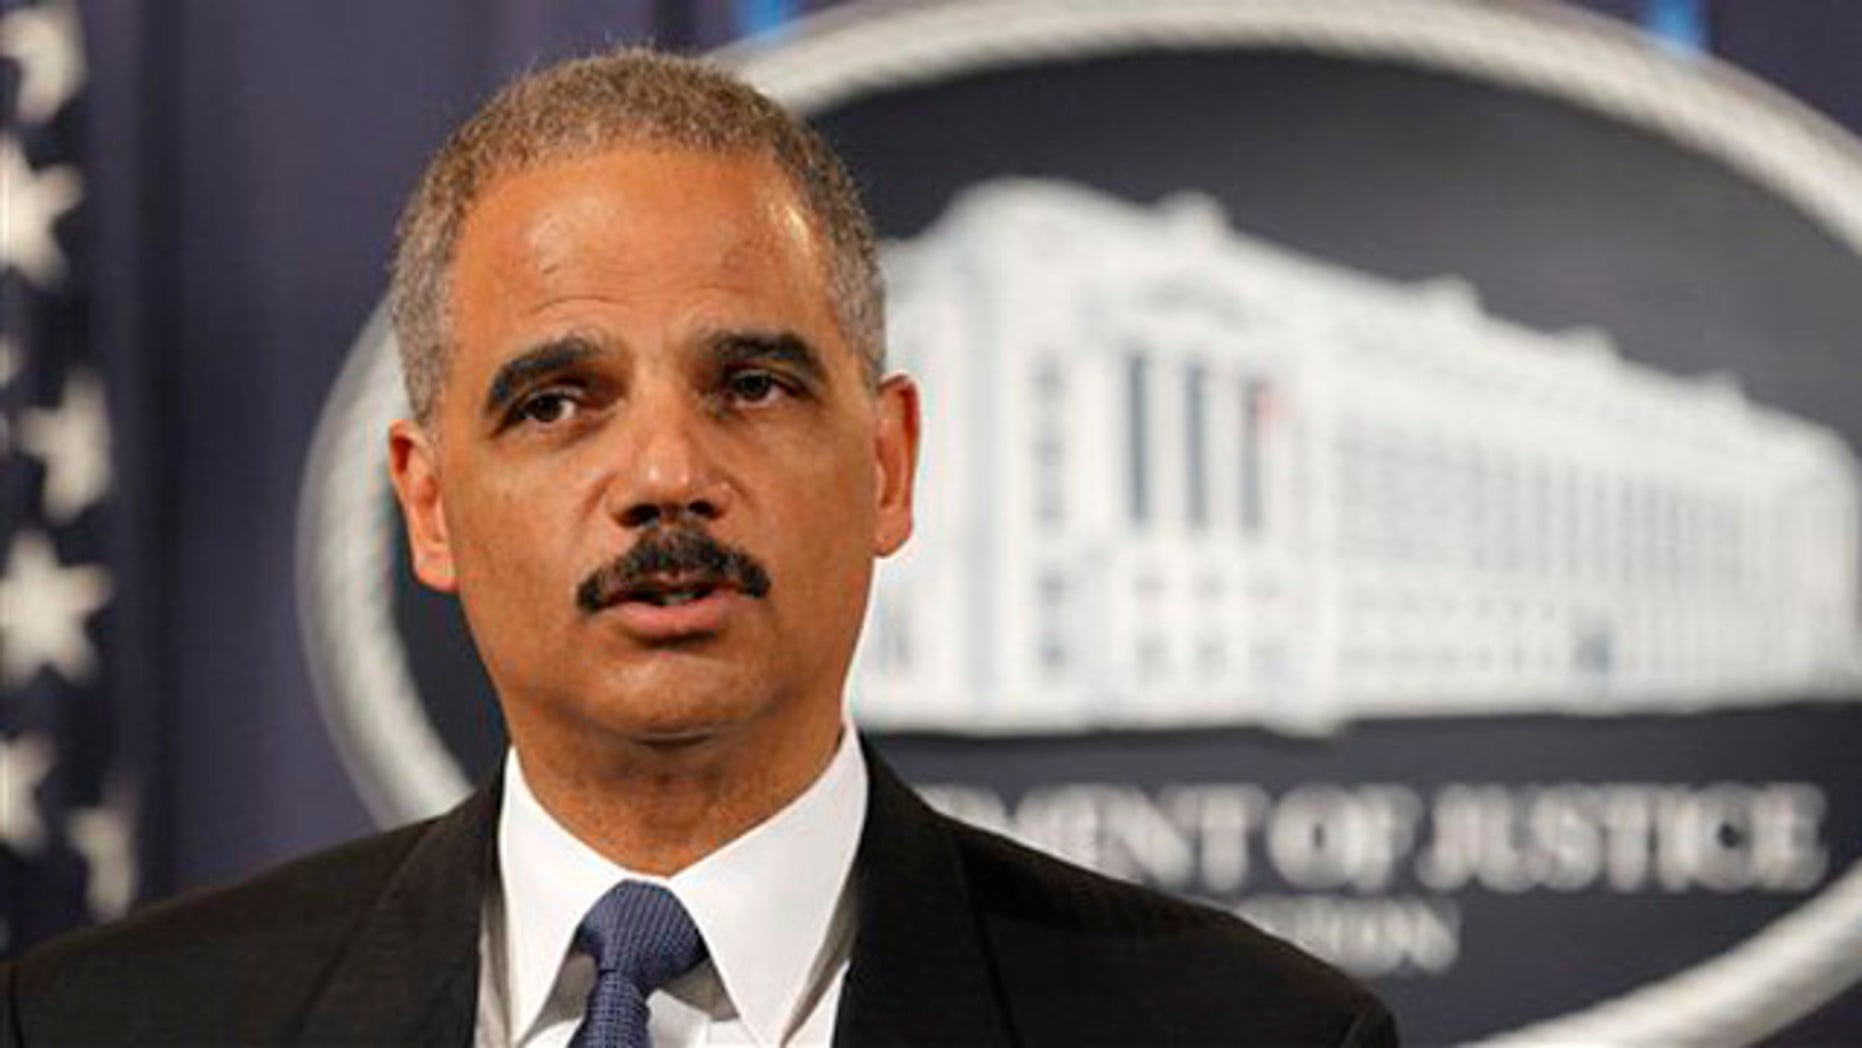 Attorney General Eric Holder speaks during a news conference at the Justice Department in Washington Oct. 11.